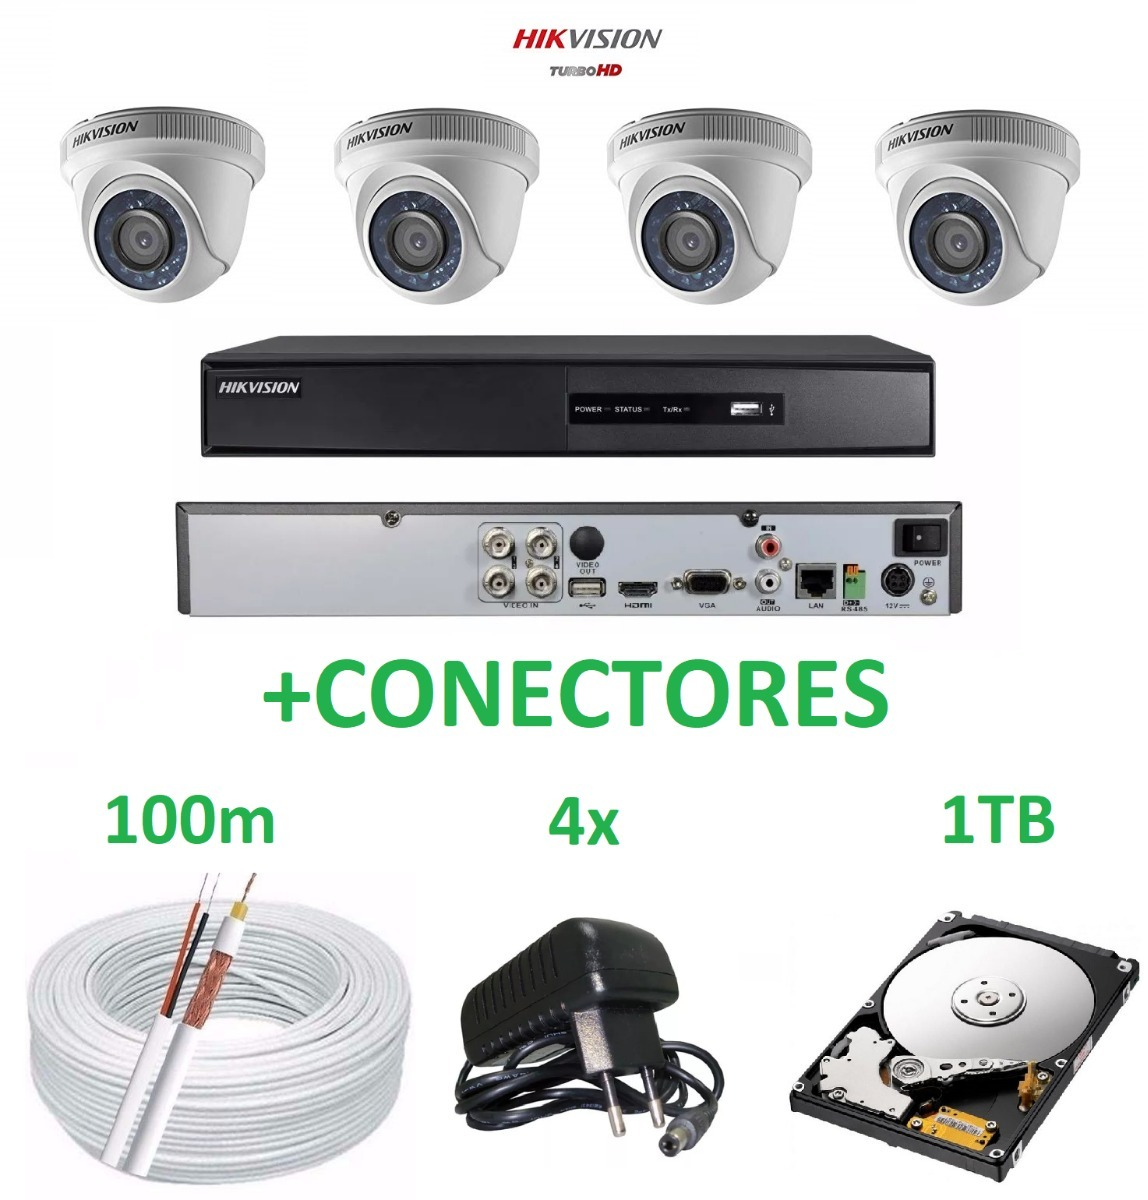 bbaf2433ac711 Kit Dvr Hikvision Séries Ds-7200 4 Câmera Dome Fonte Hd Cabo - R ...